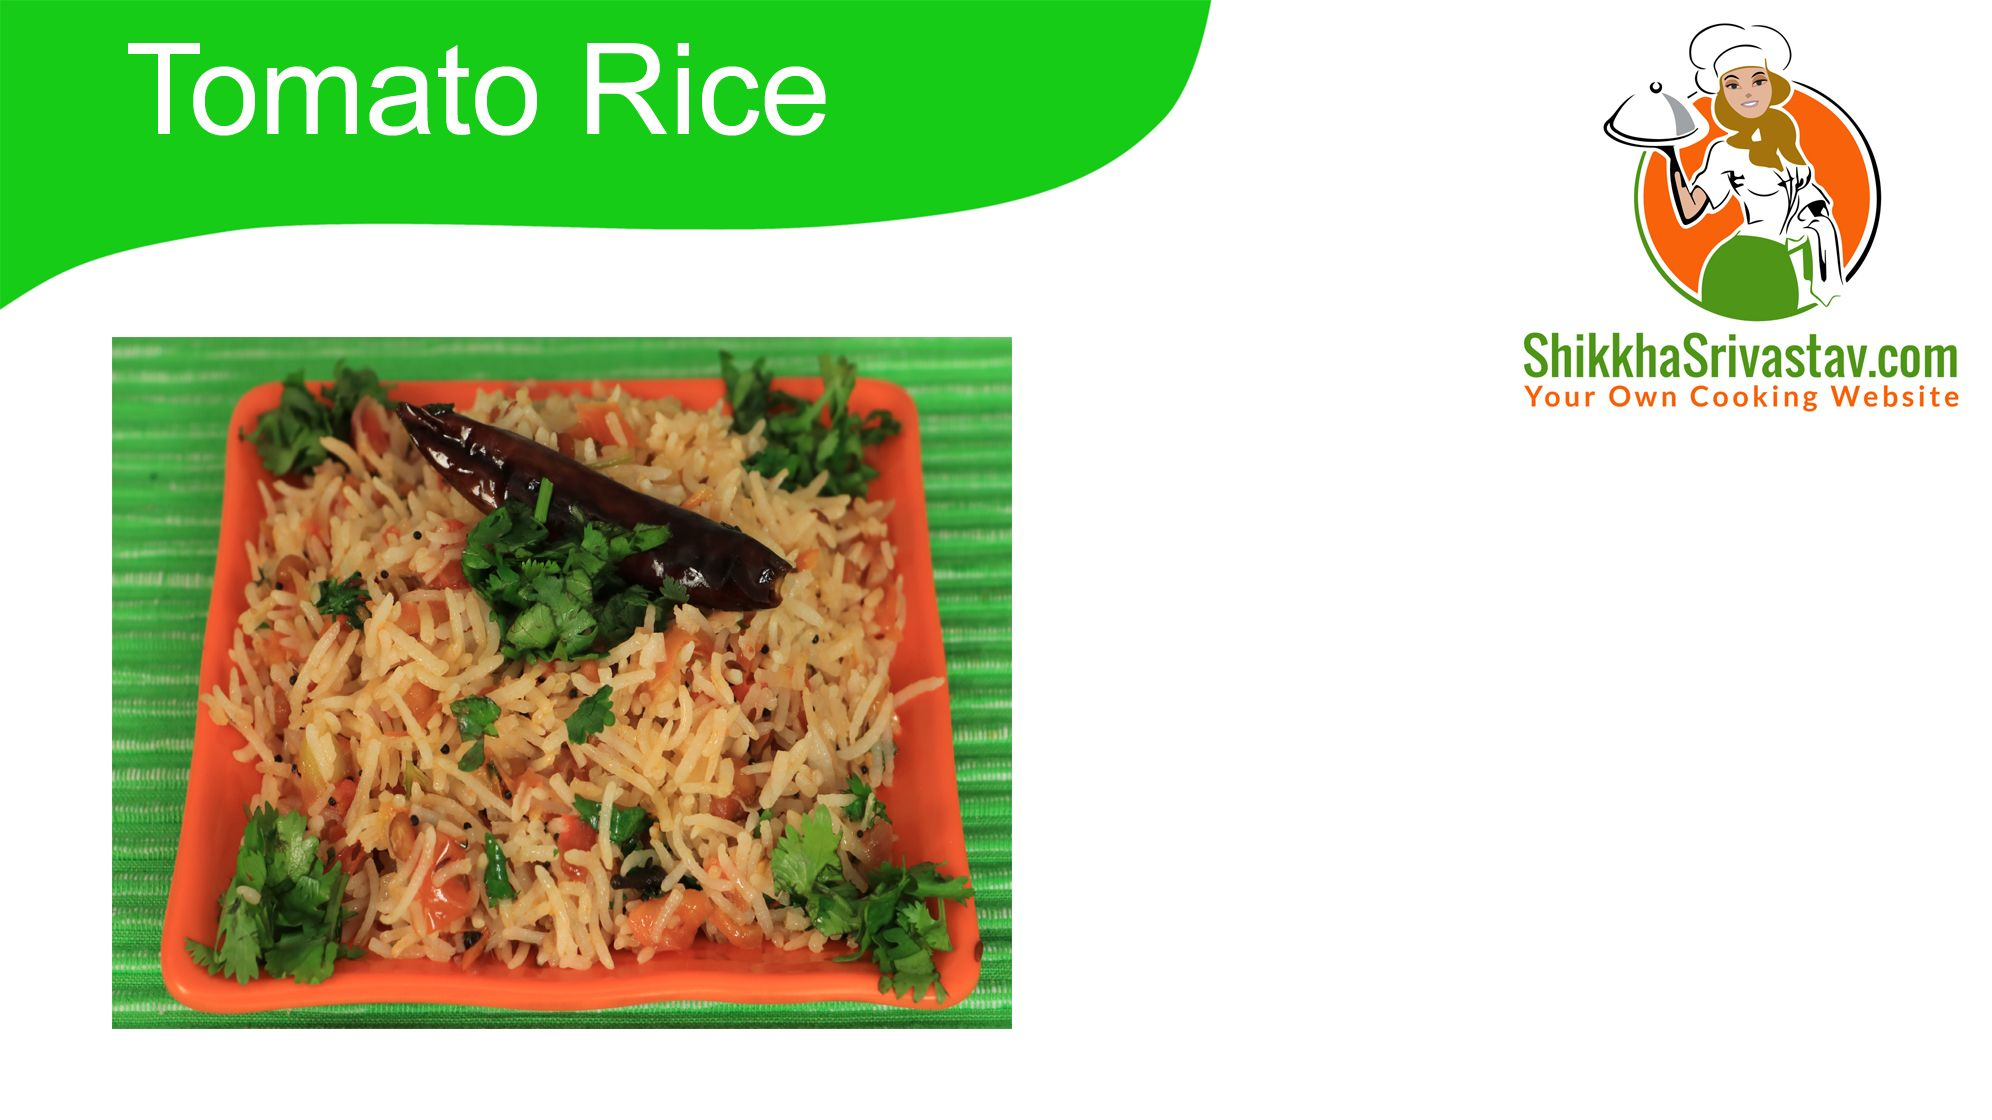 Tomato rice recipe in hindi how to make tomato rice at home in efb558715dd7a4ce30abe47c0c65d0e5g forumfinder Choice Image